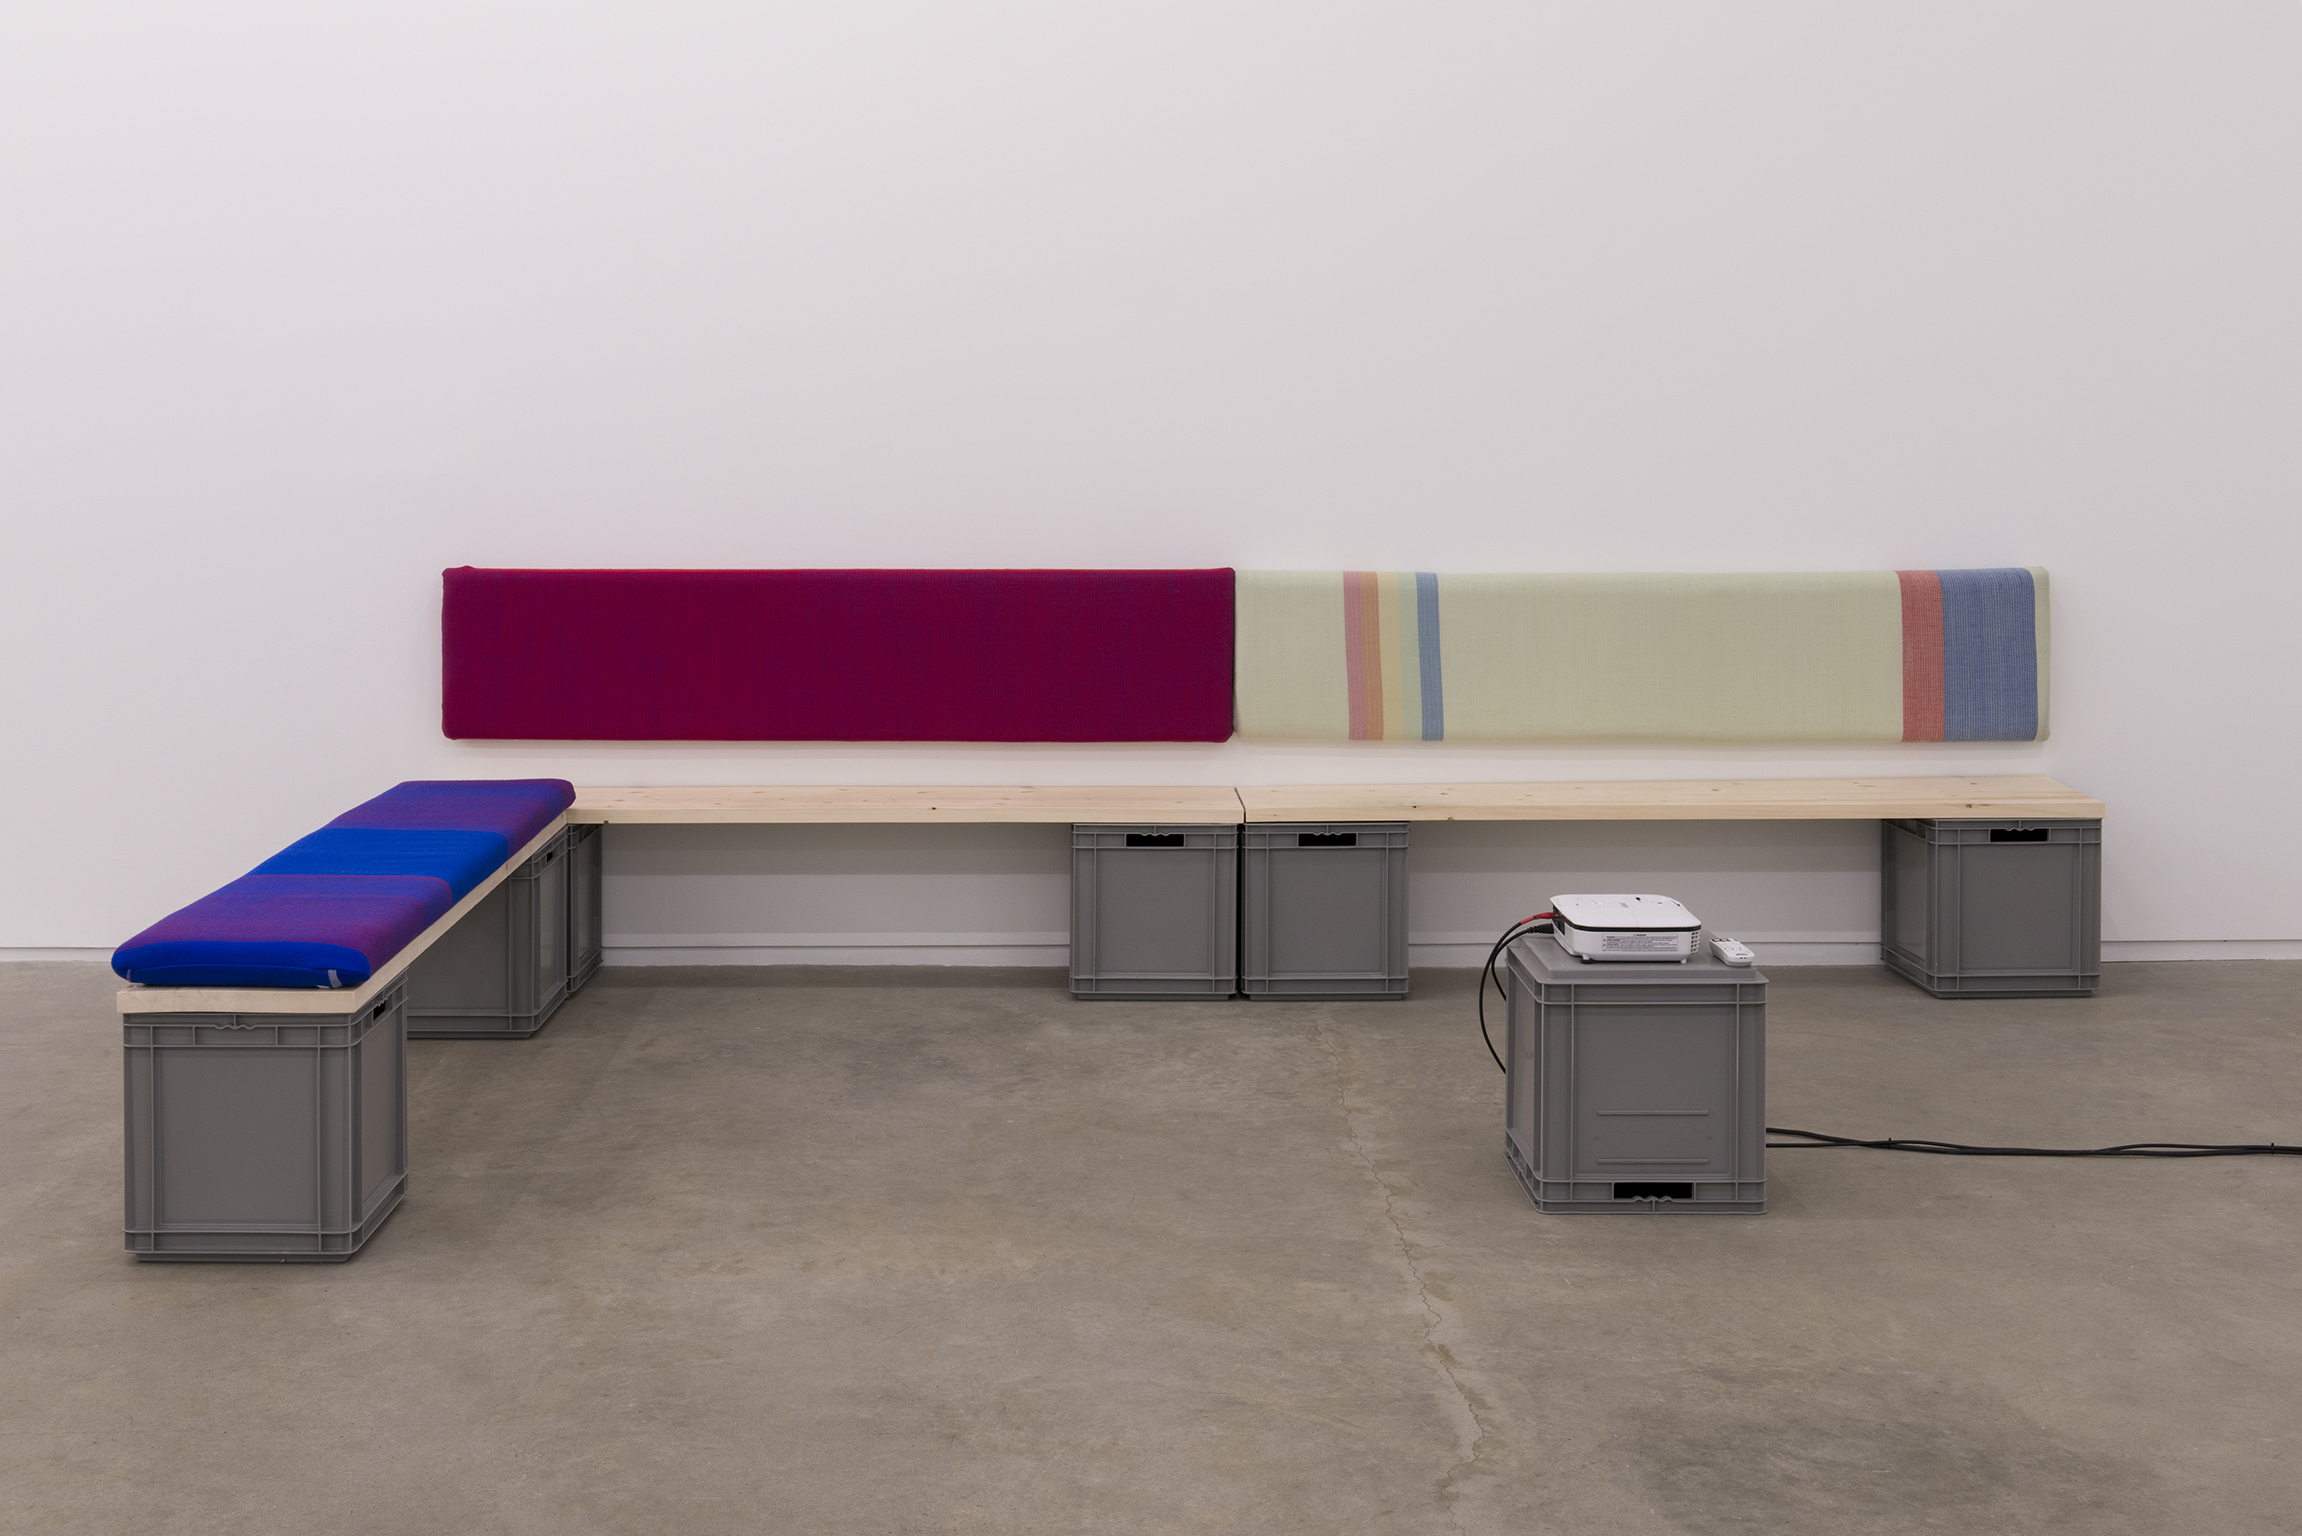 Andrea Büttner, Benches, 2013, handwoven wool backrests, spruce, plastic crates, each 37 x 78 x 16 in. (93 x 2 x 40 cm) by